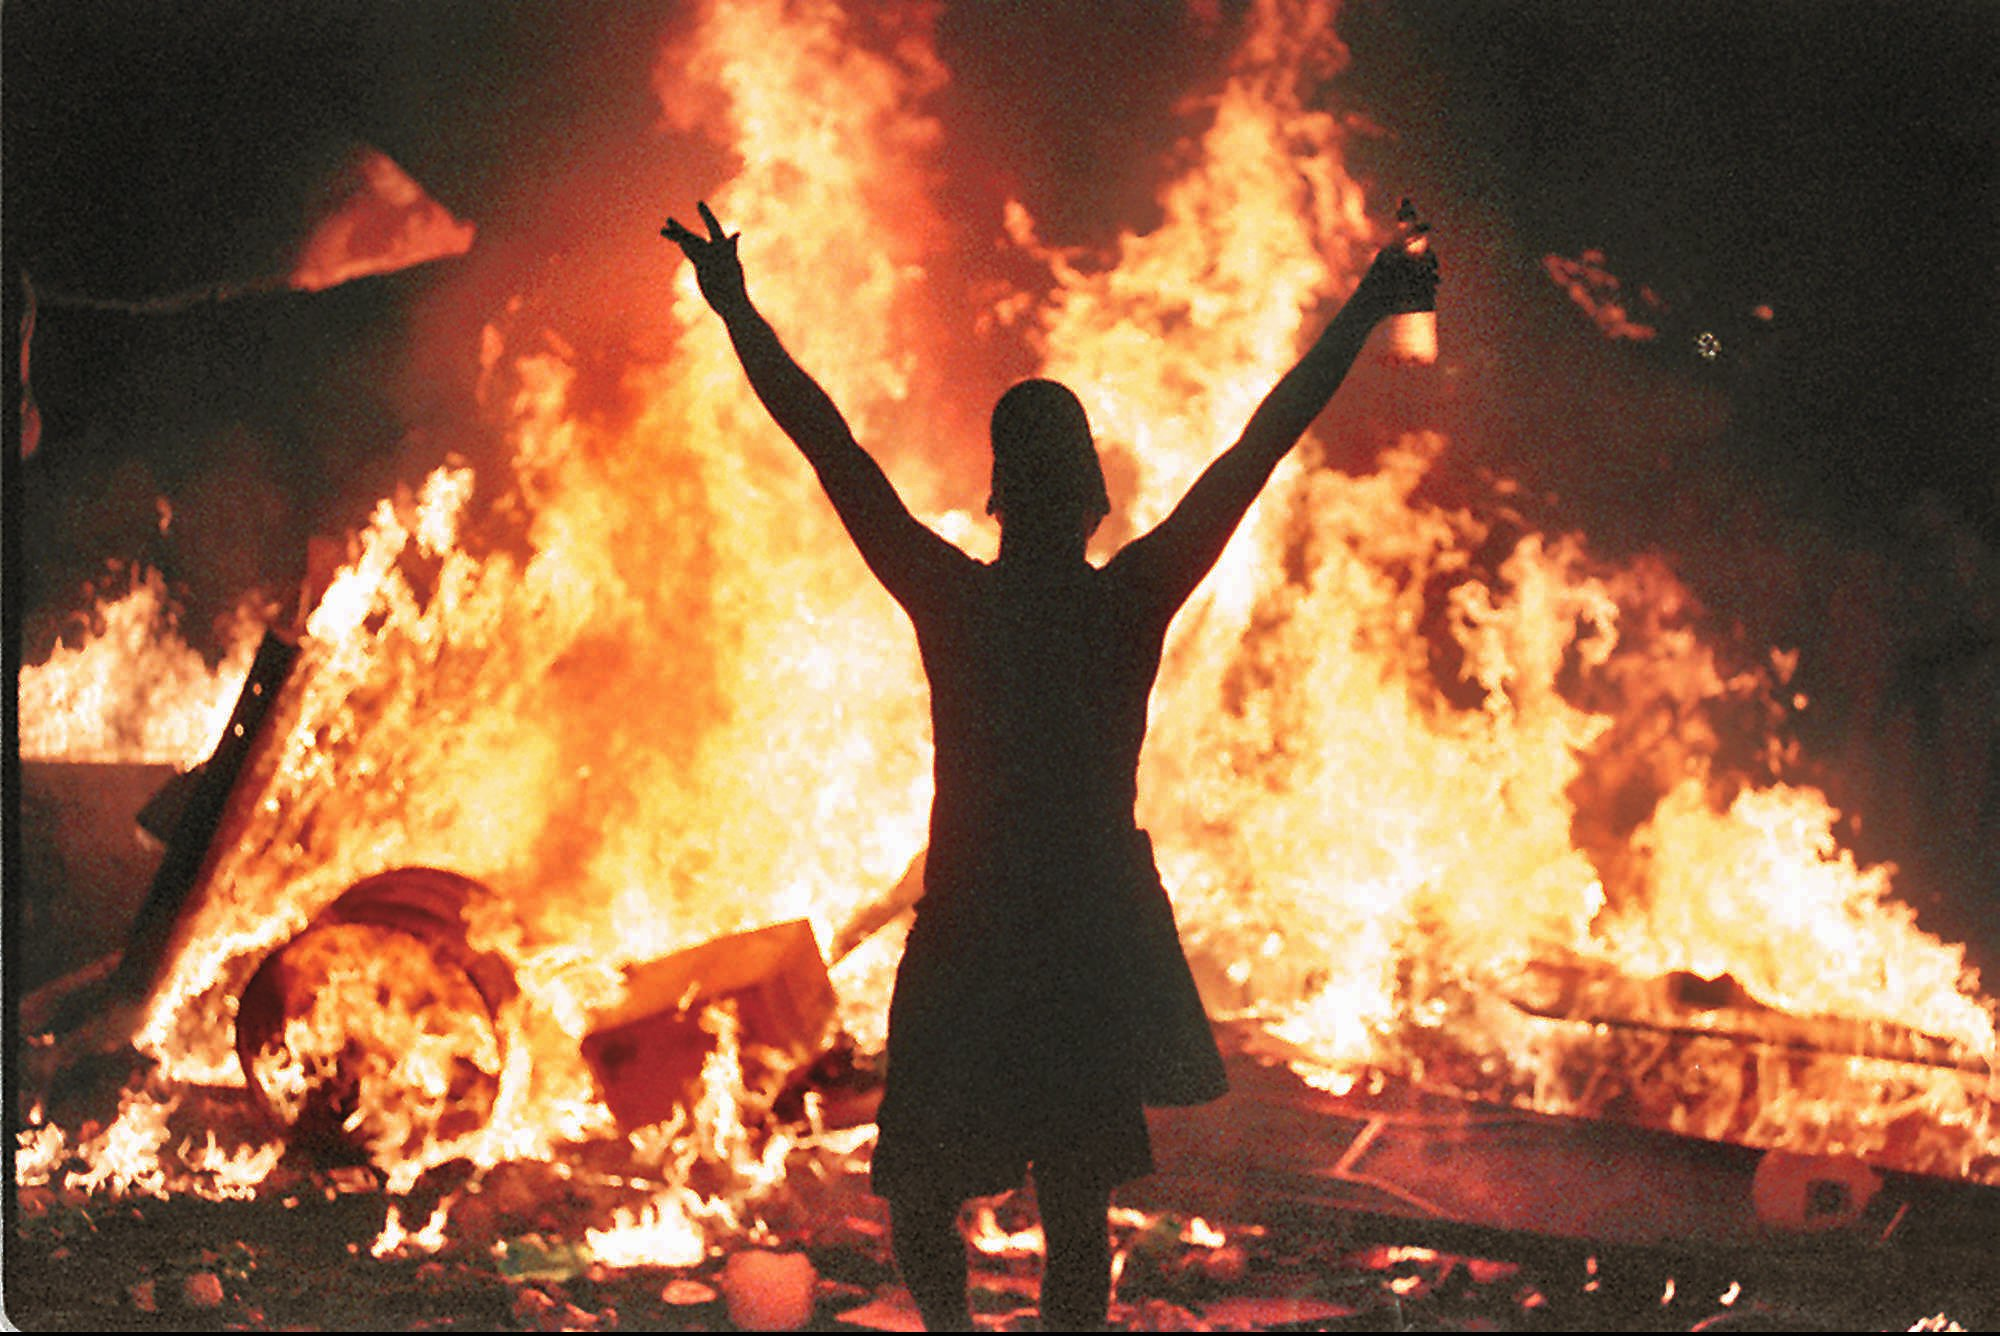 A man stands in front of a bonfire at the 1999 Woodstock Festival, Sunday, July 25, 1999, in Rome, N.Y. After almost 72 hours of peace and love, Woodstock '99 ended in blazing chaos Sunday night as hundreds of concertgoers turned into vandals, starting fires and looting.